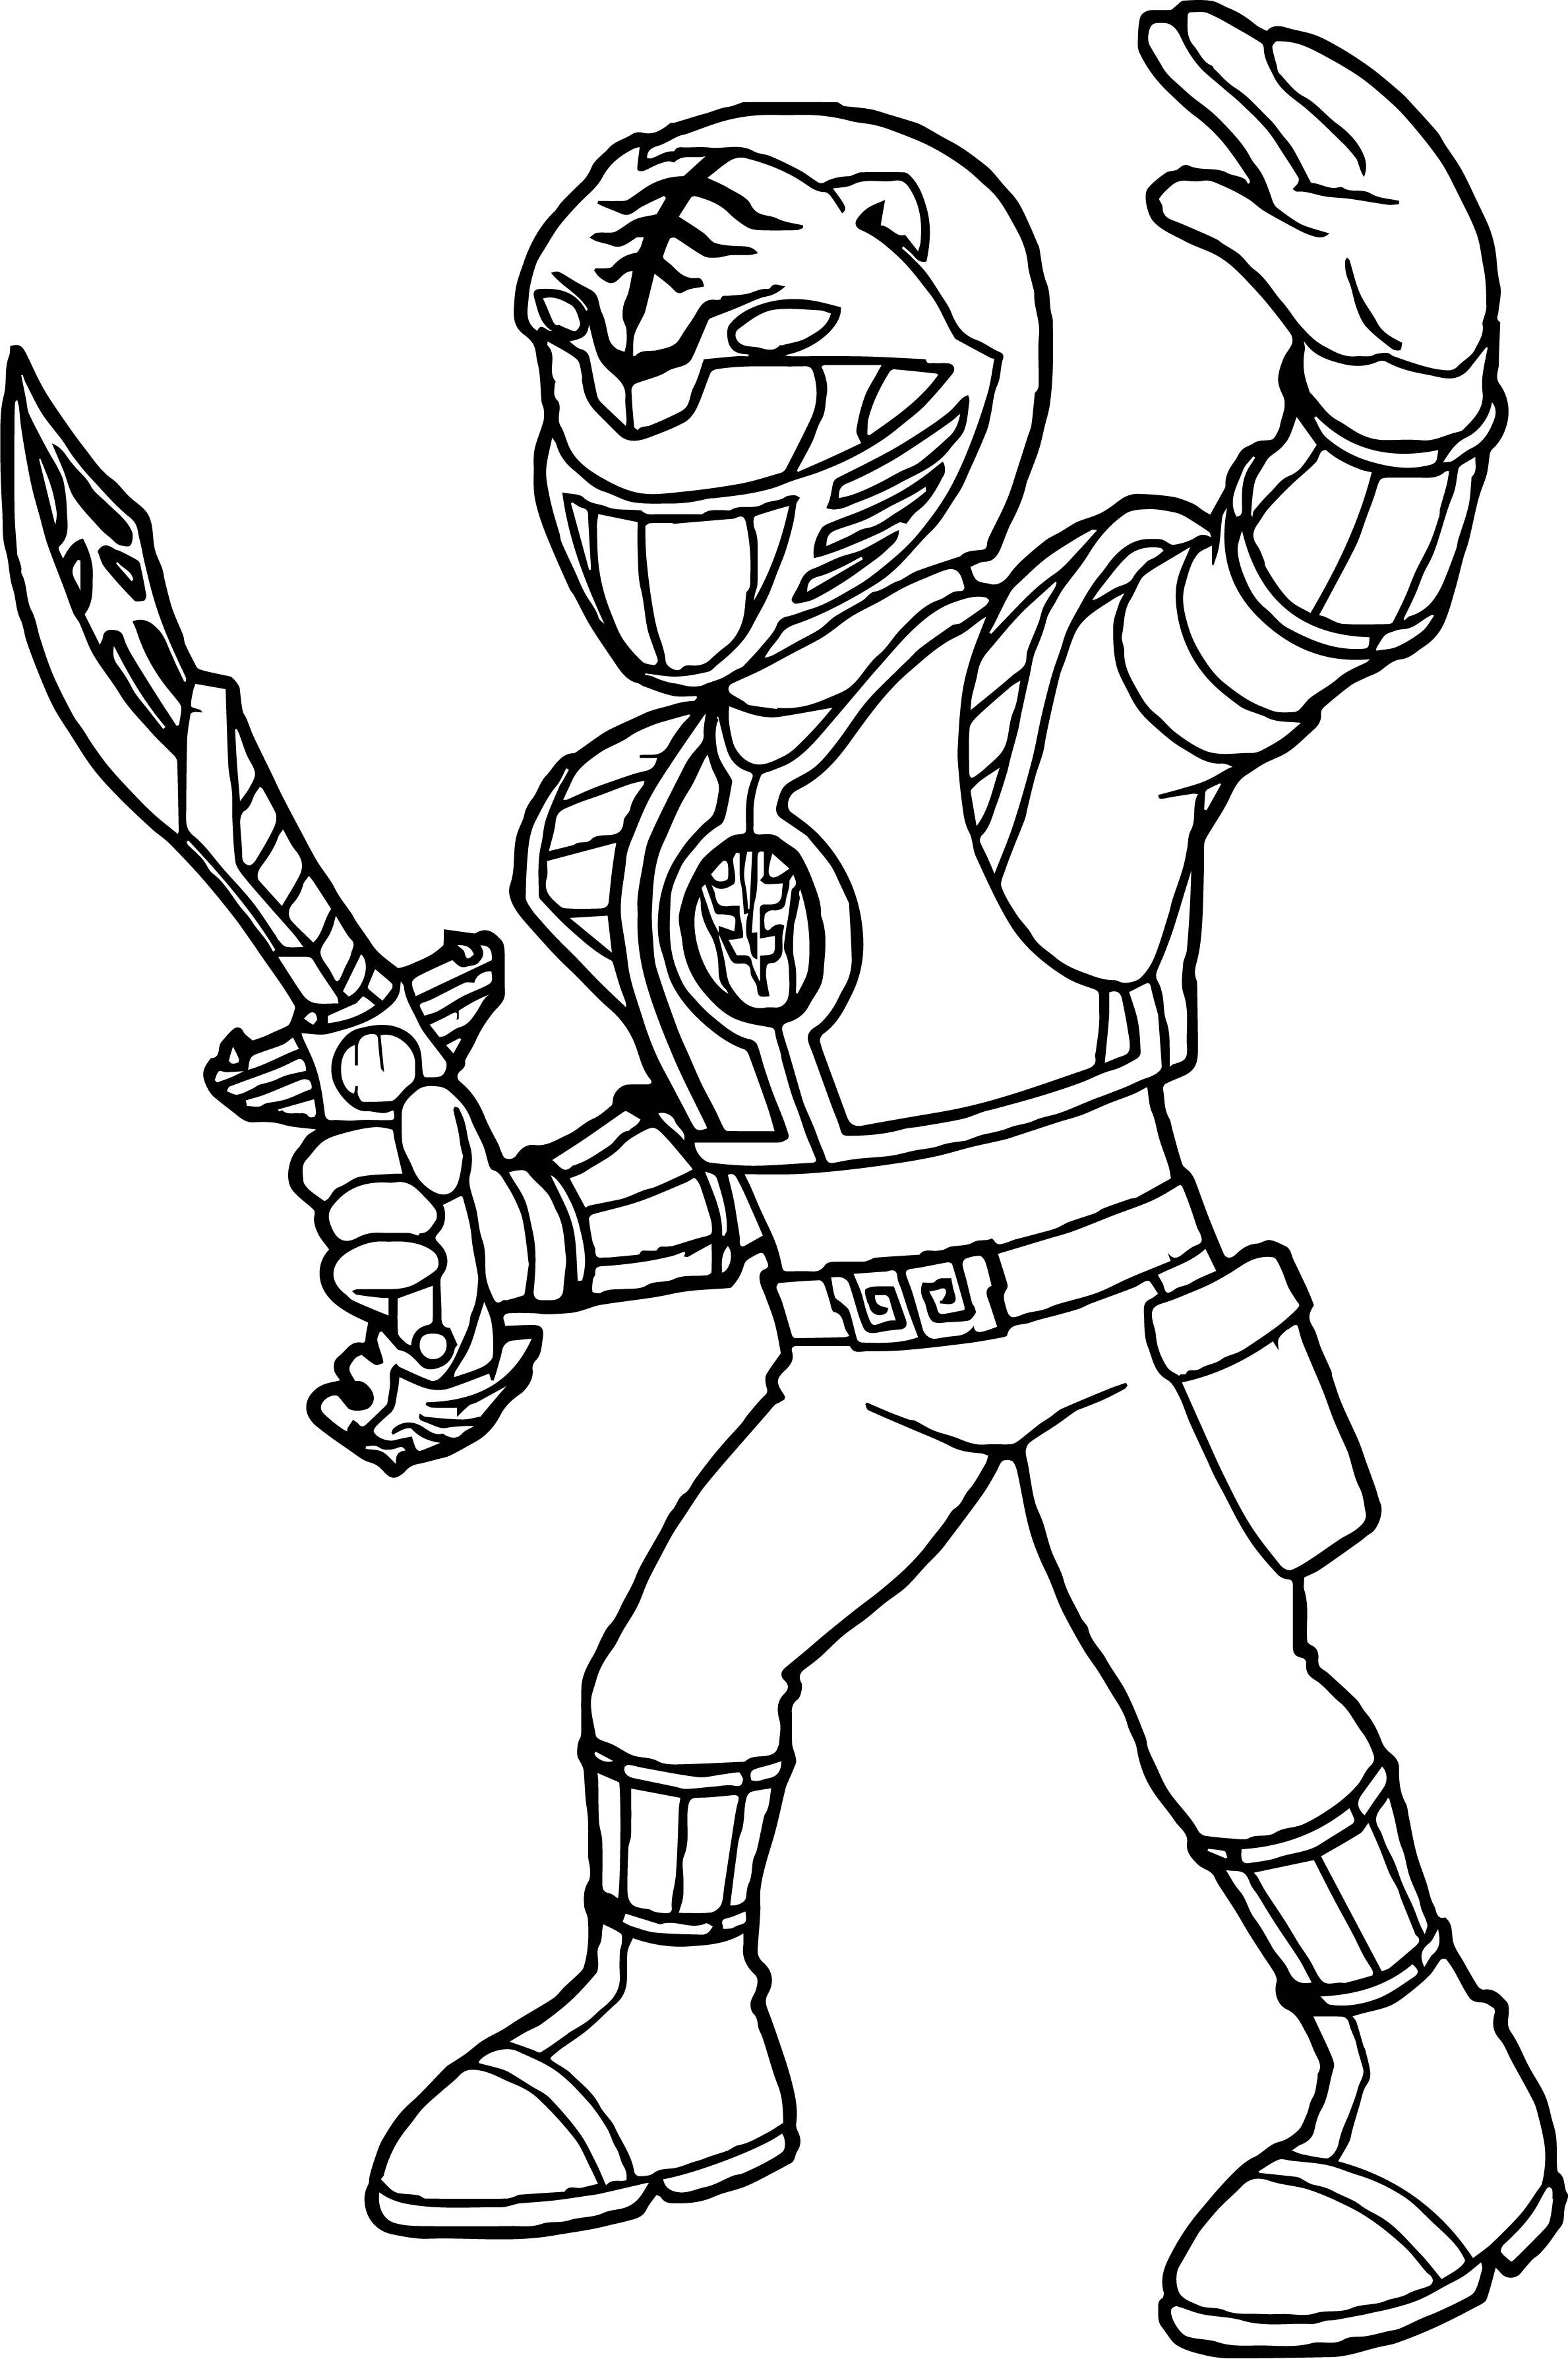 coloring pages for kids power rangers power rangers for kids power rangers kids coloring pages kids for coloring power pages rangers